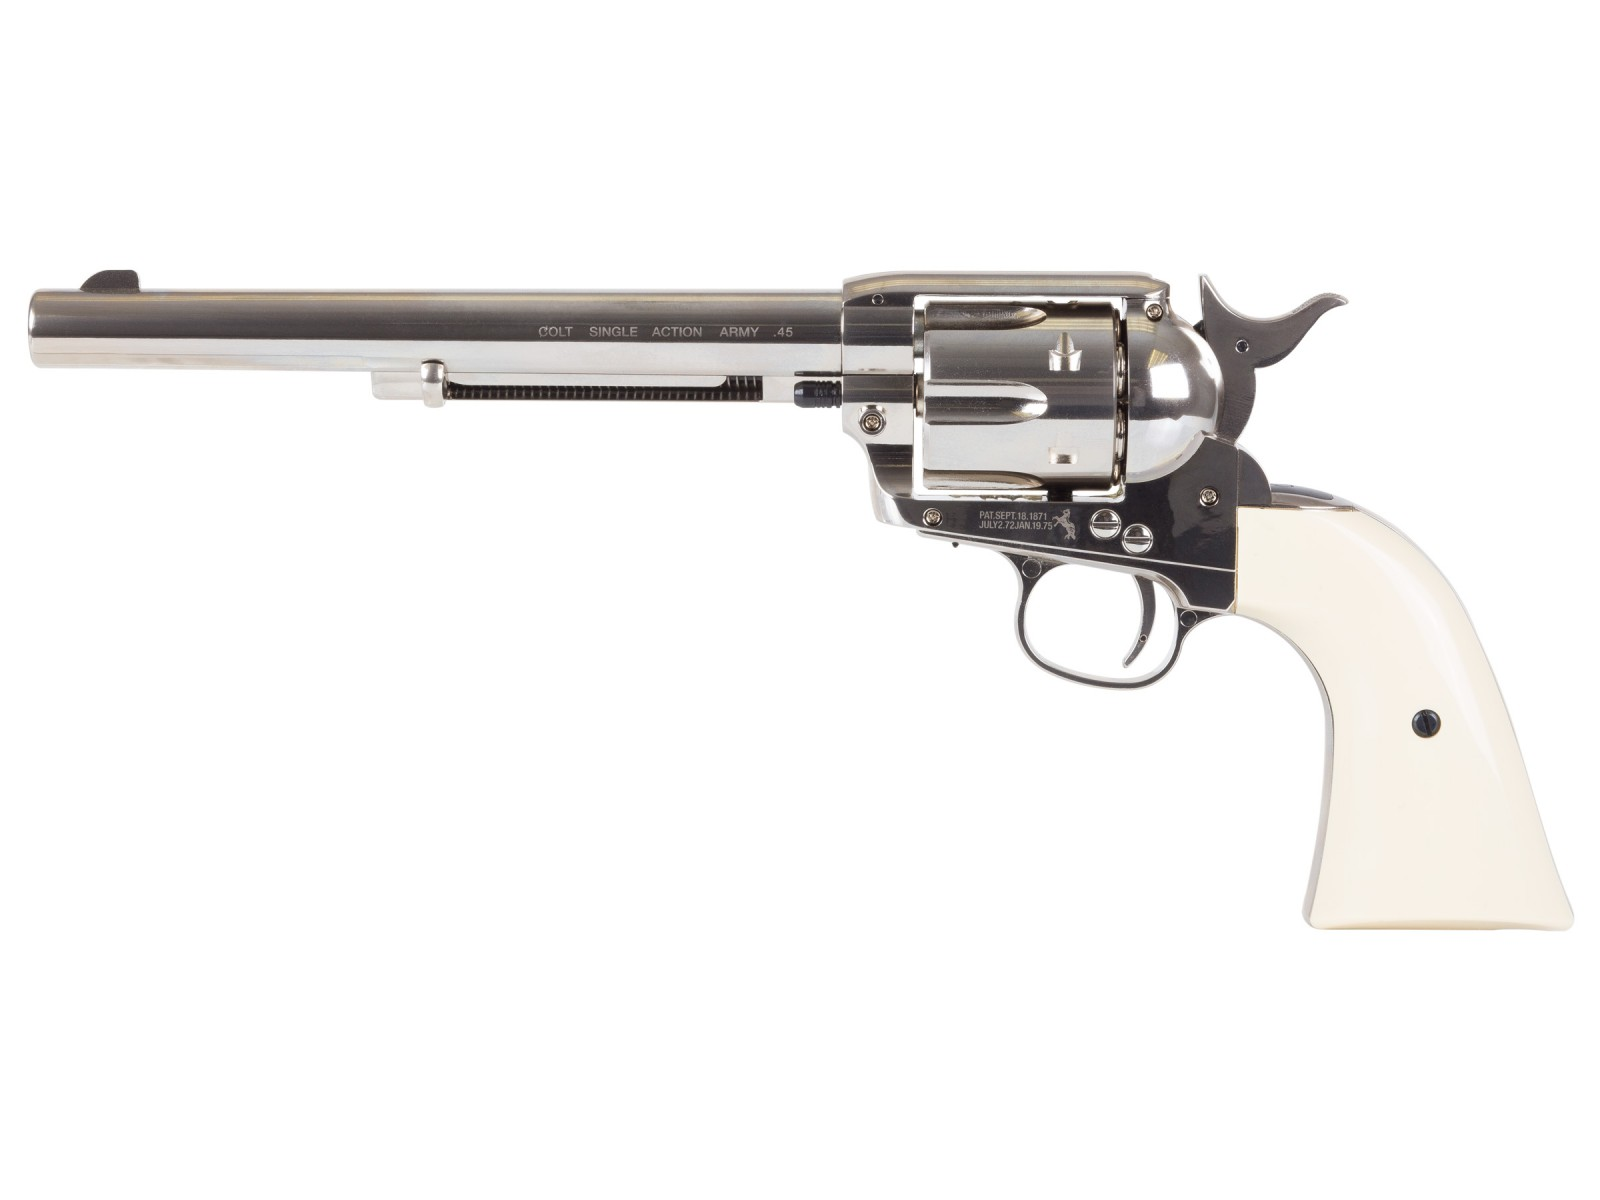 Colt SAA Peacemaker.